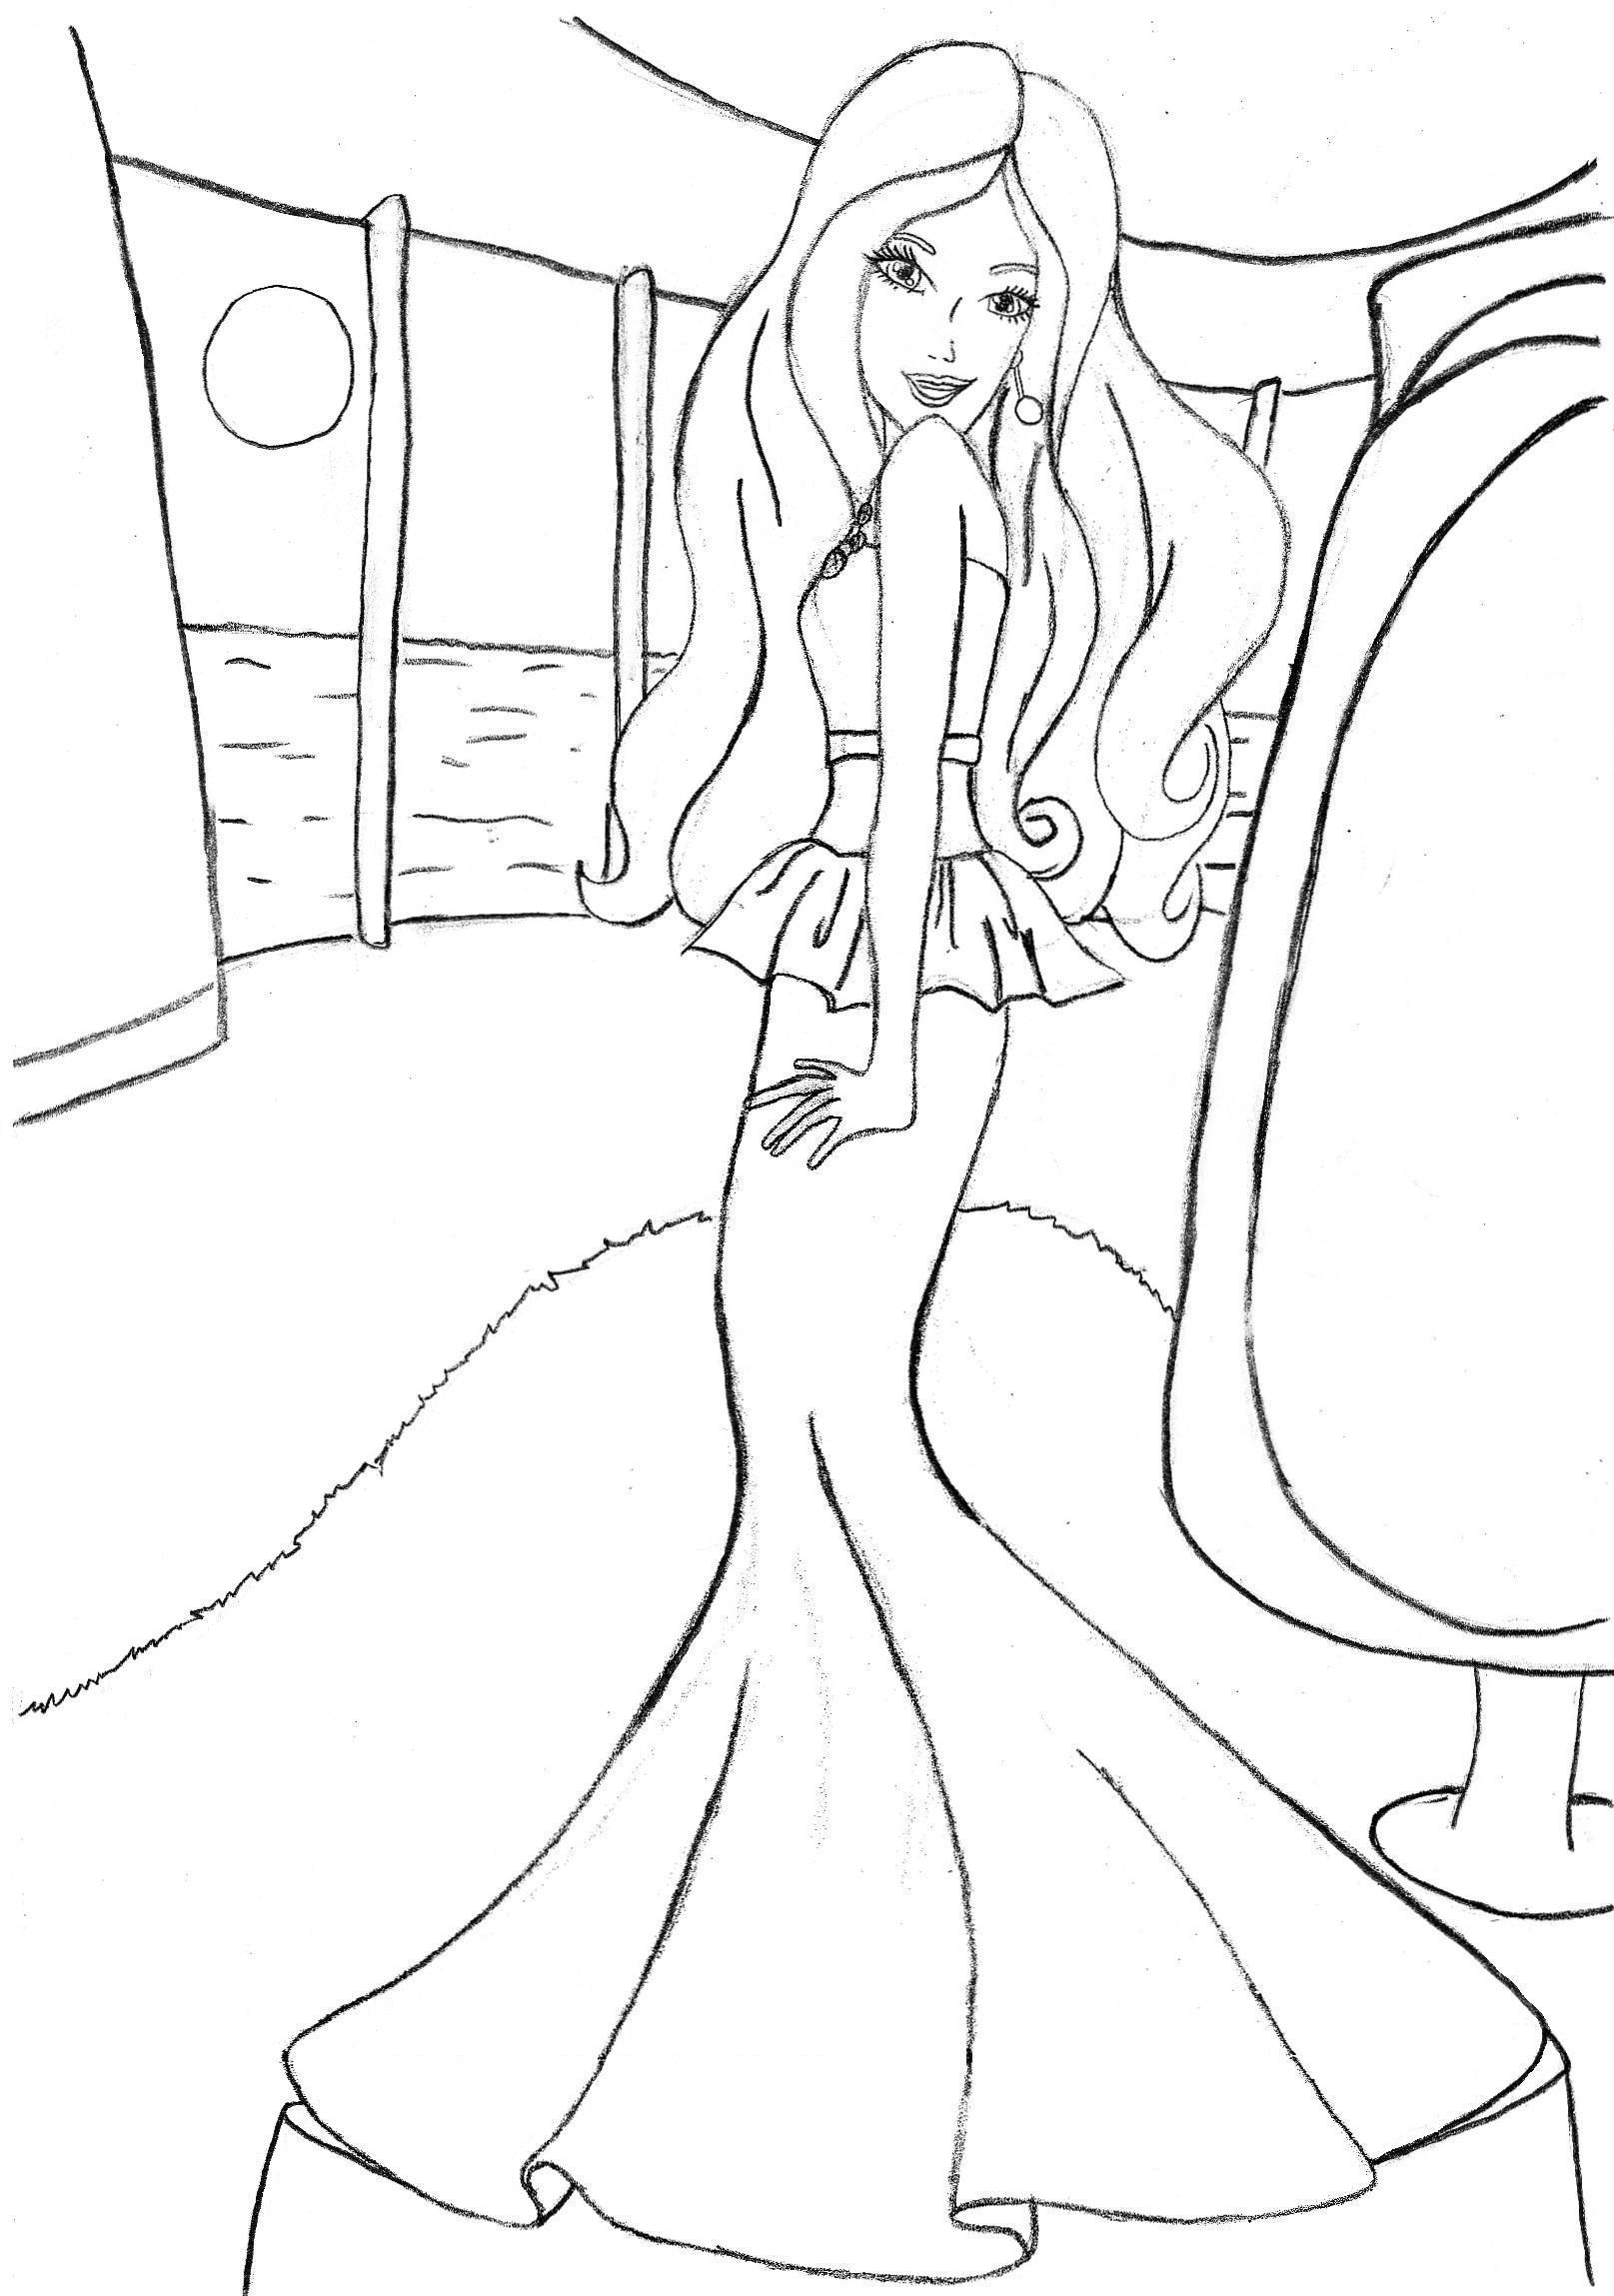 Free coloring page barbie - Image Coloring Pages Online Free Printable Barbie Coloring Pages